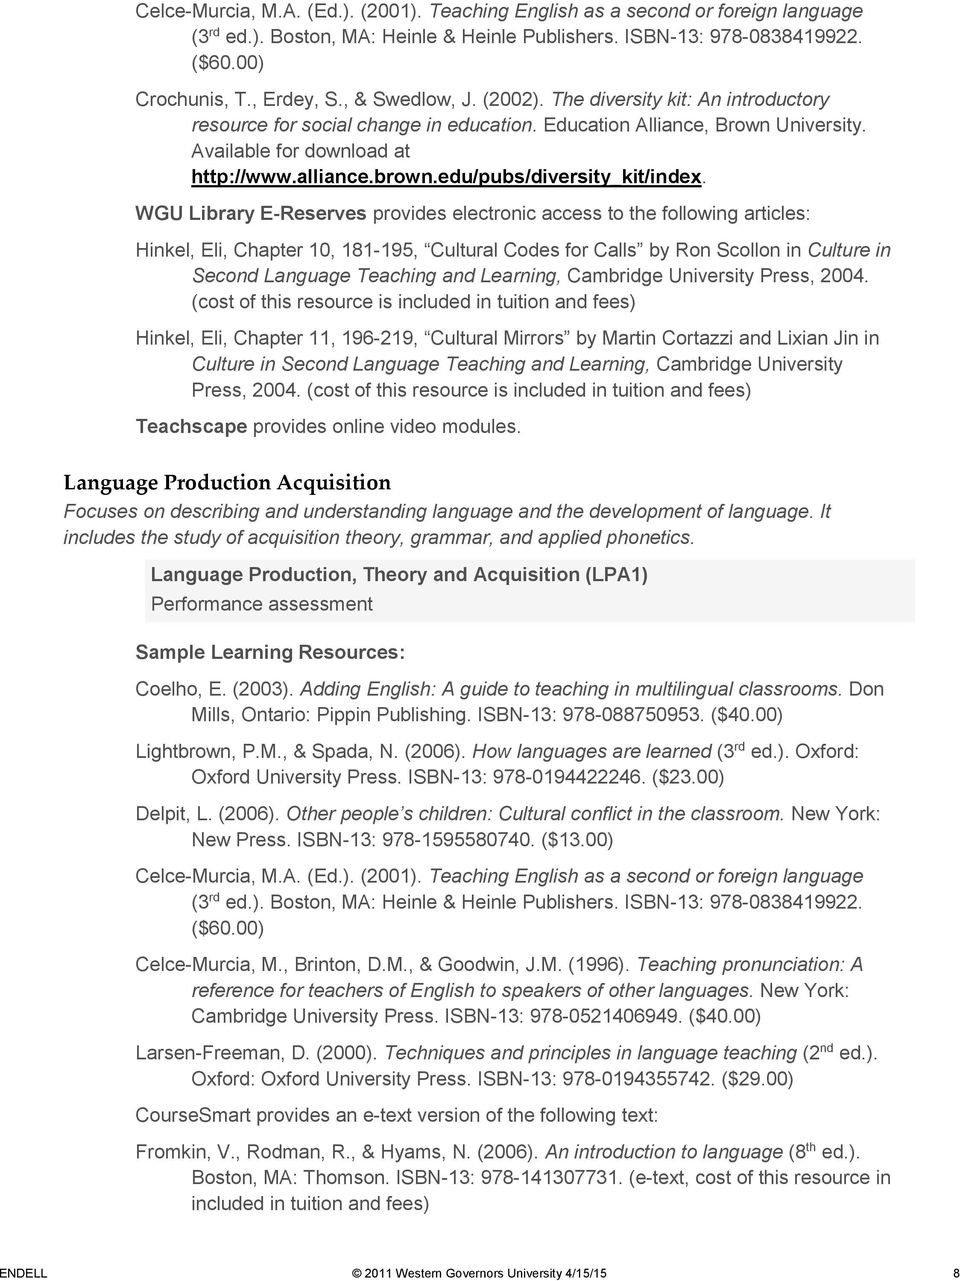 WGU Library E-Reserves provides electronic access to the following articles: Hinkel, Eli, Chapter 10, 181-195, Cultural Codes for Calls by Ron Scollon in Culture in Second Language Teaching and